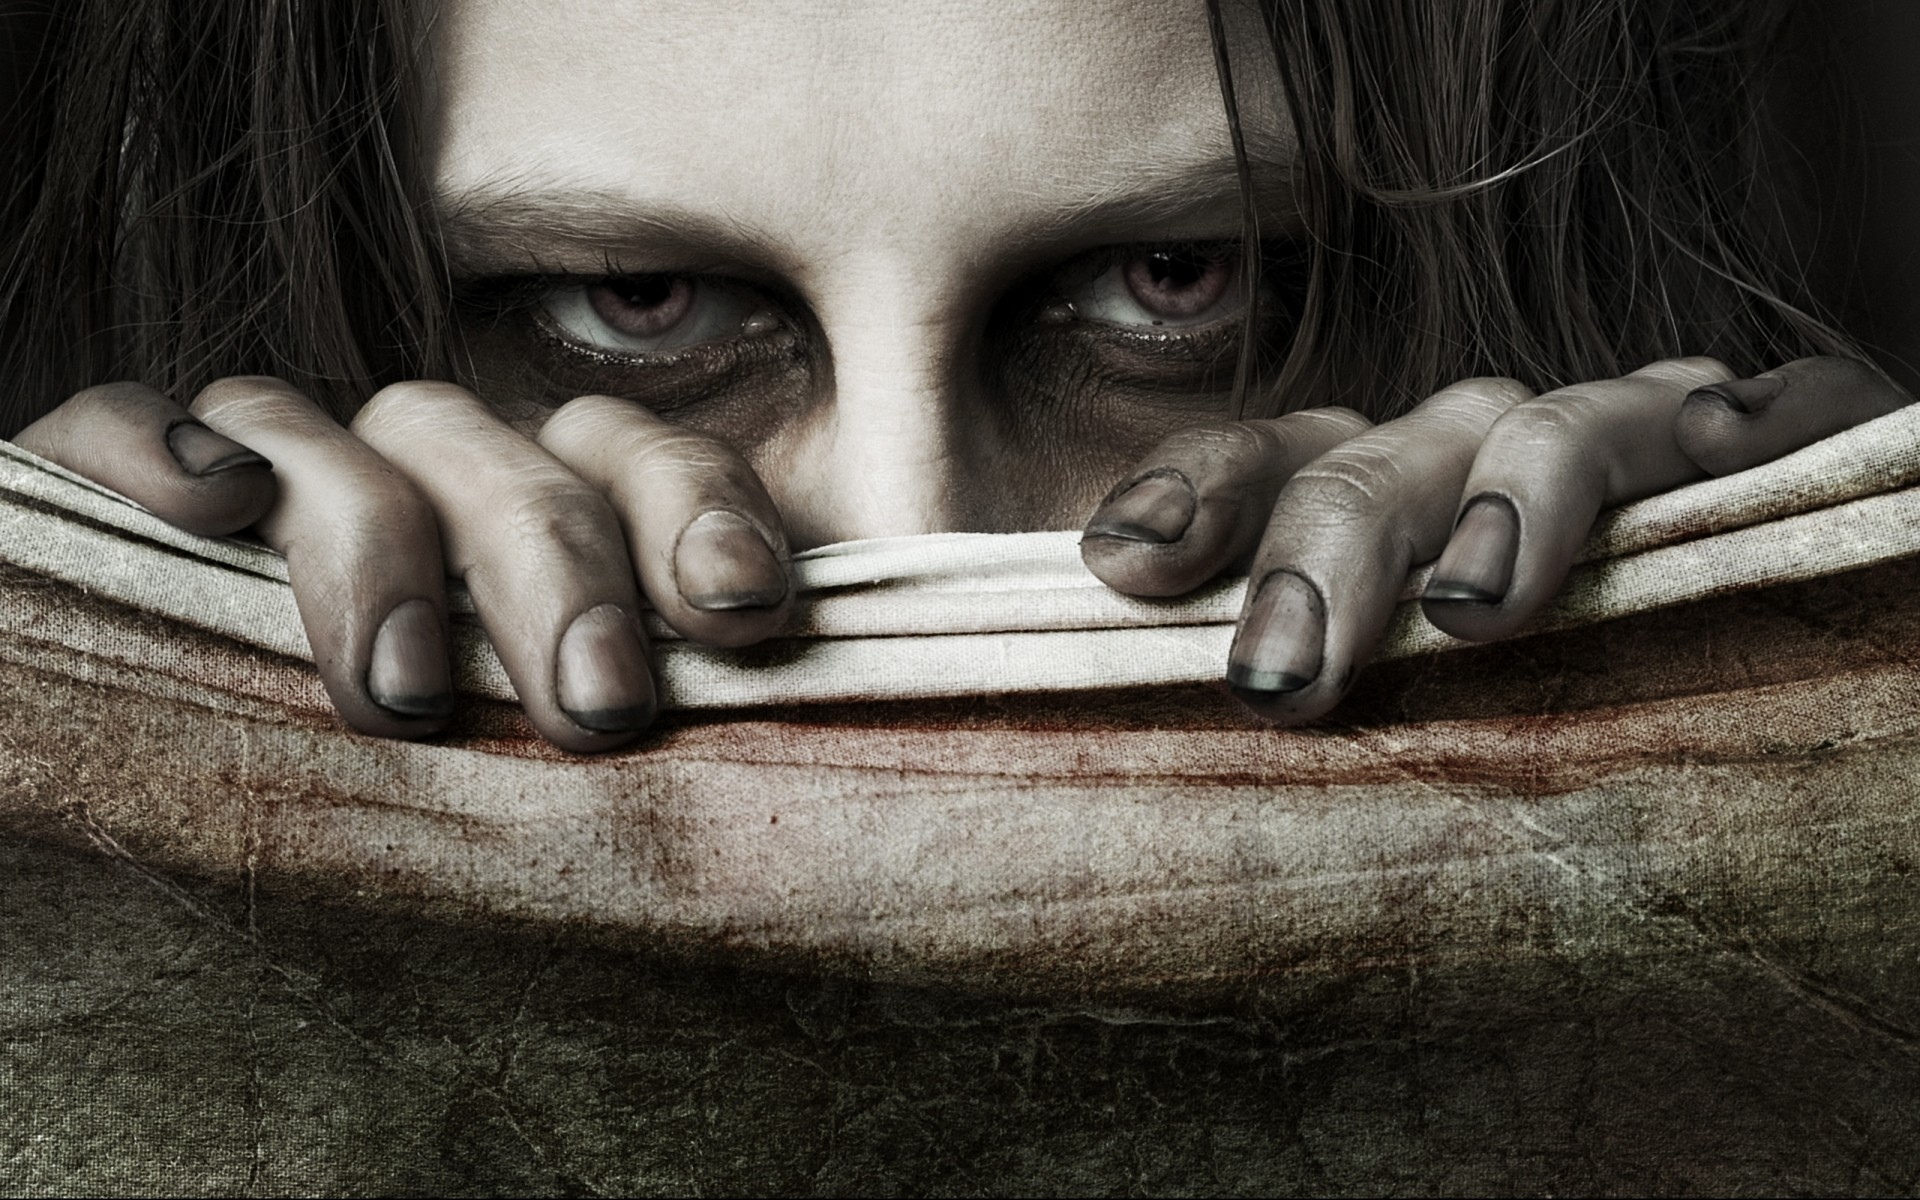 Res: 1920x1200, creepy,dark, display, eyes, scary, tablet backgrounds horror, mood, evil,drawing,  art Wallpaper HD